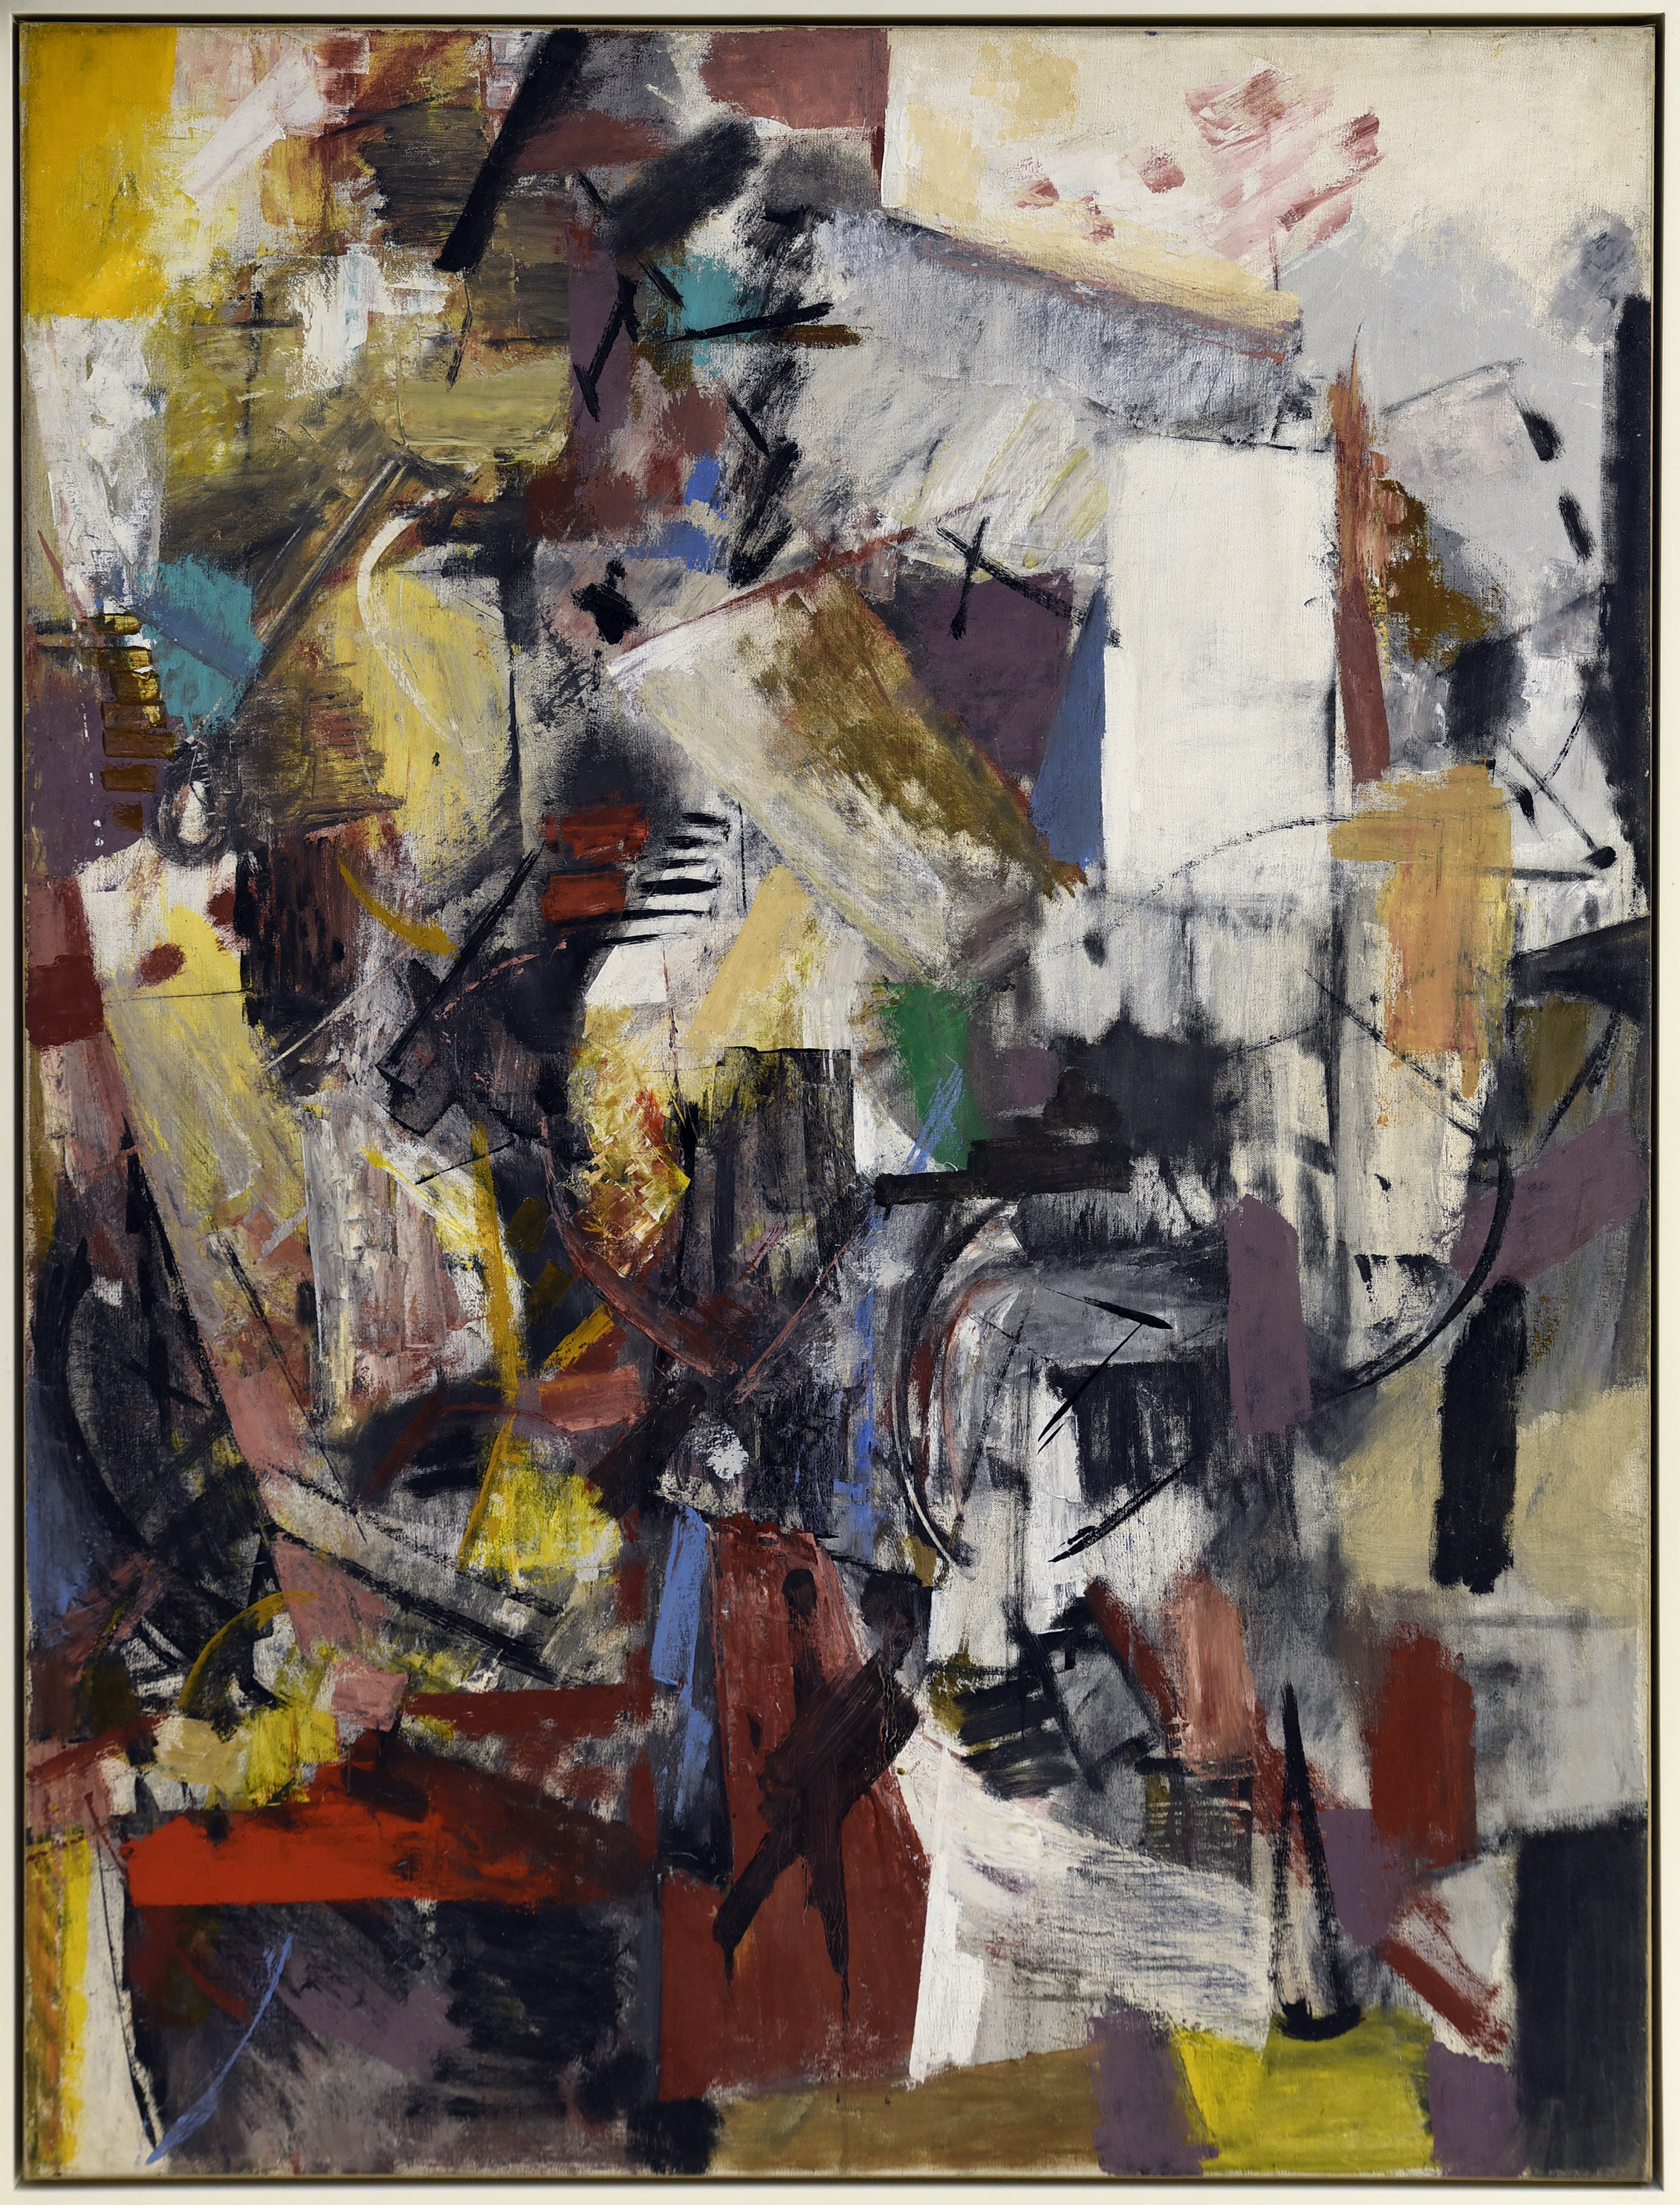 Untitled,   Oil on canvas, c. 1950s, 47 x 36 inches